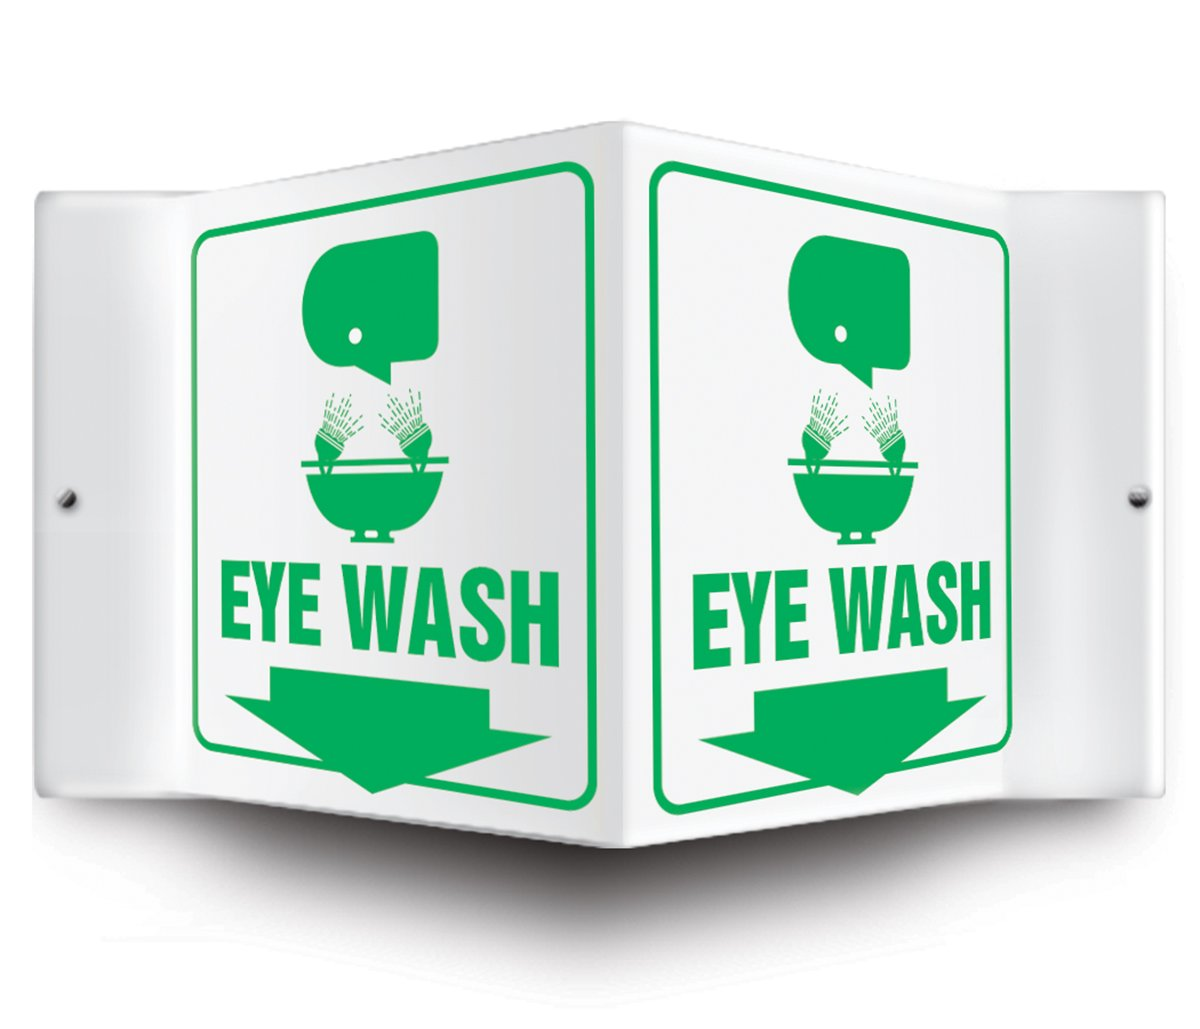 """Accuform Signs PSP601 Projection Sign 3D, Legend """"EYE WASH (ARROW DOWN)"""" with Graphic, 6"""" x 5"""" Panel, 0.10"""" Thick High-Impact Plastic, Pre-Drilled Mounting Holes, Green on White"""